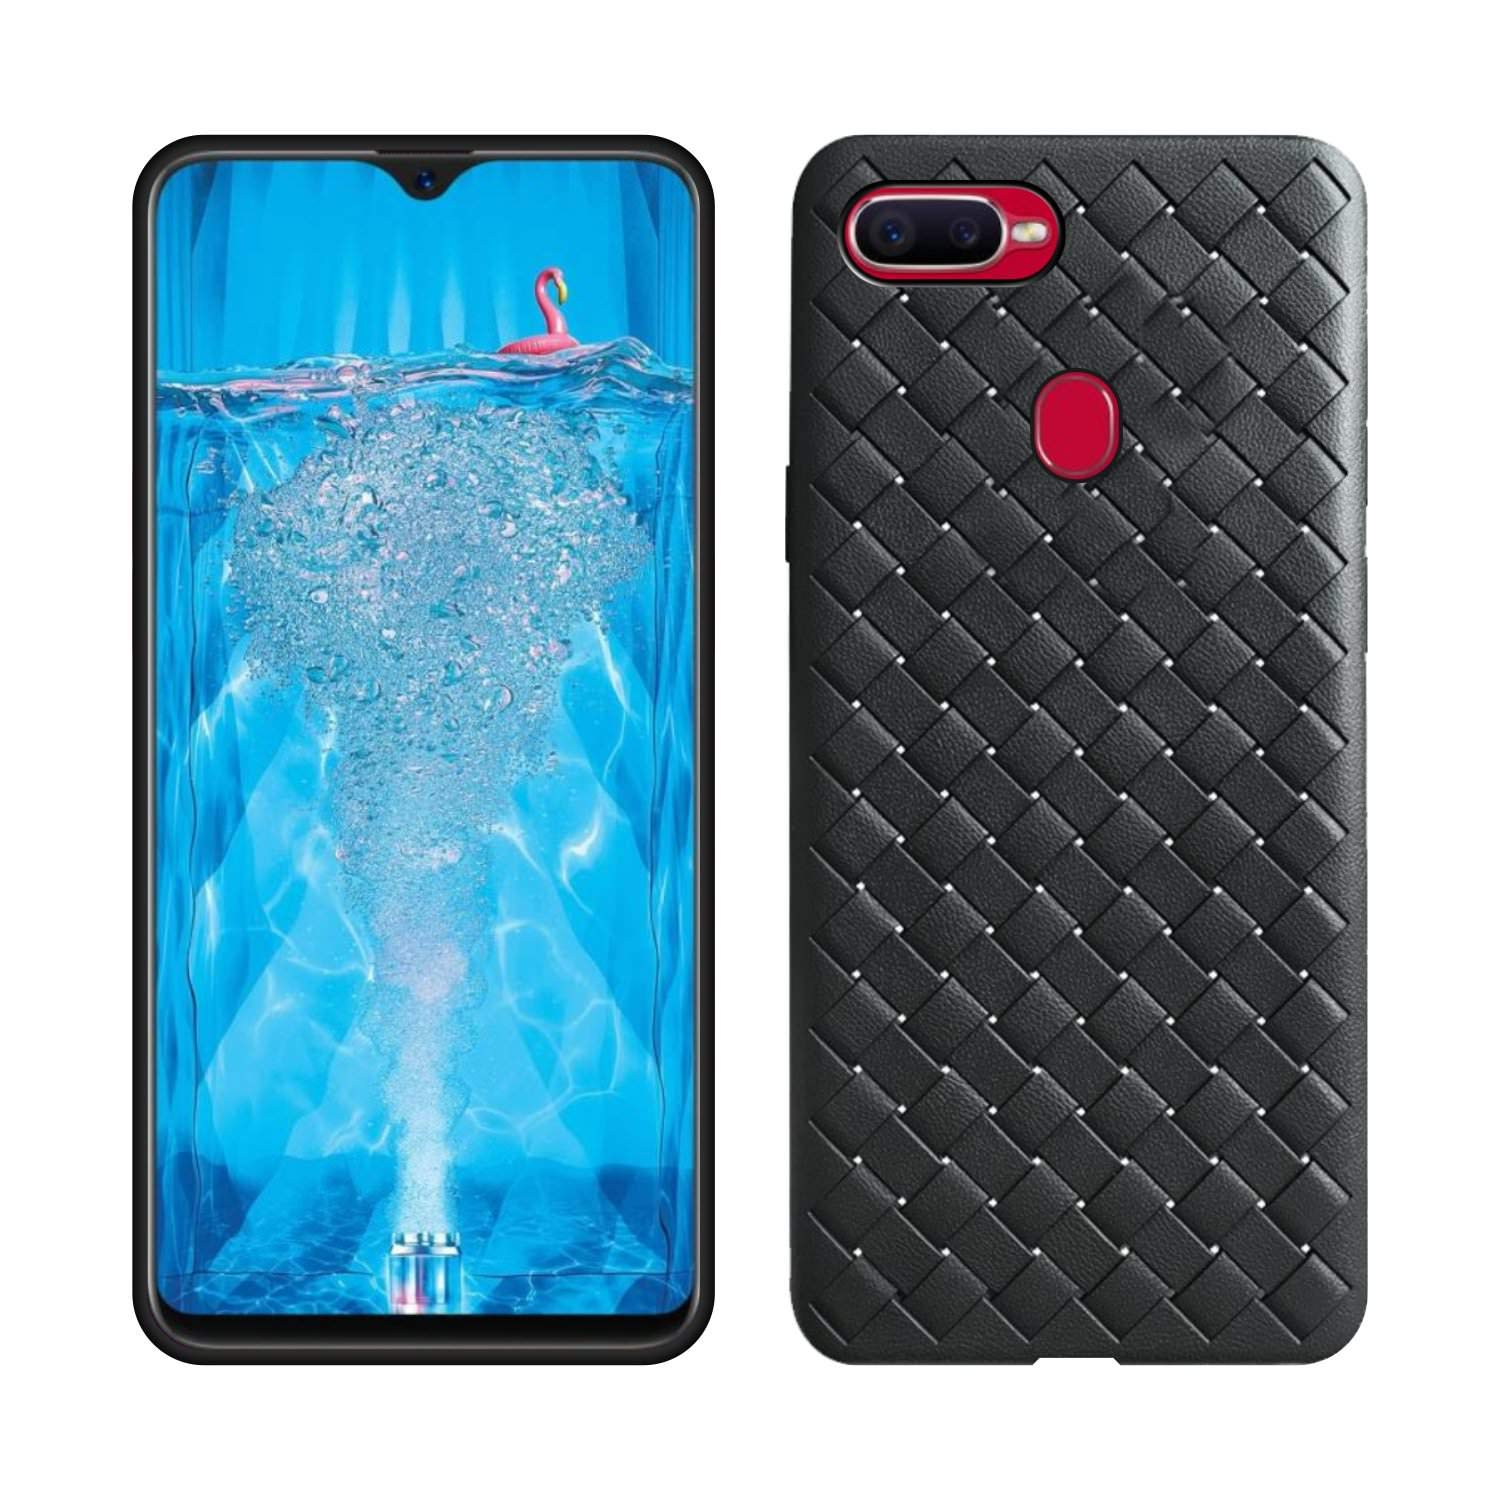 quality design 2d114 67839 Case Creation Soft Cover for Oppo F9 Pro, Oppo F9Pro: Amazon.in ...